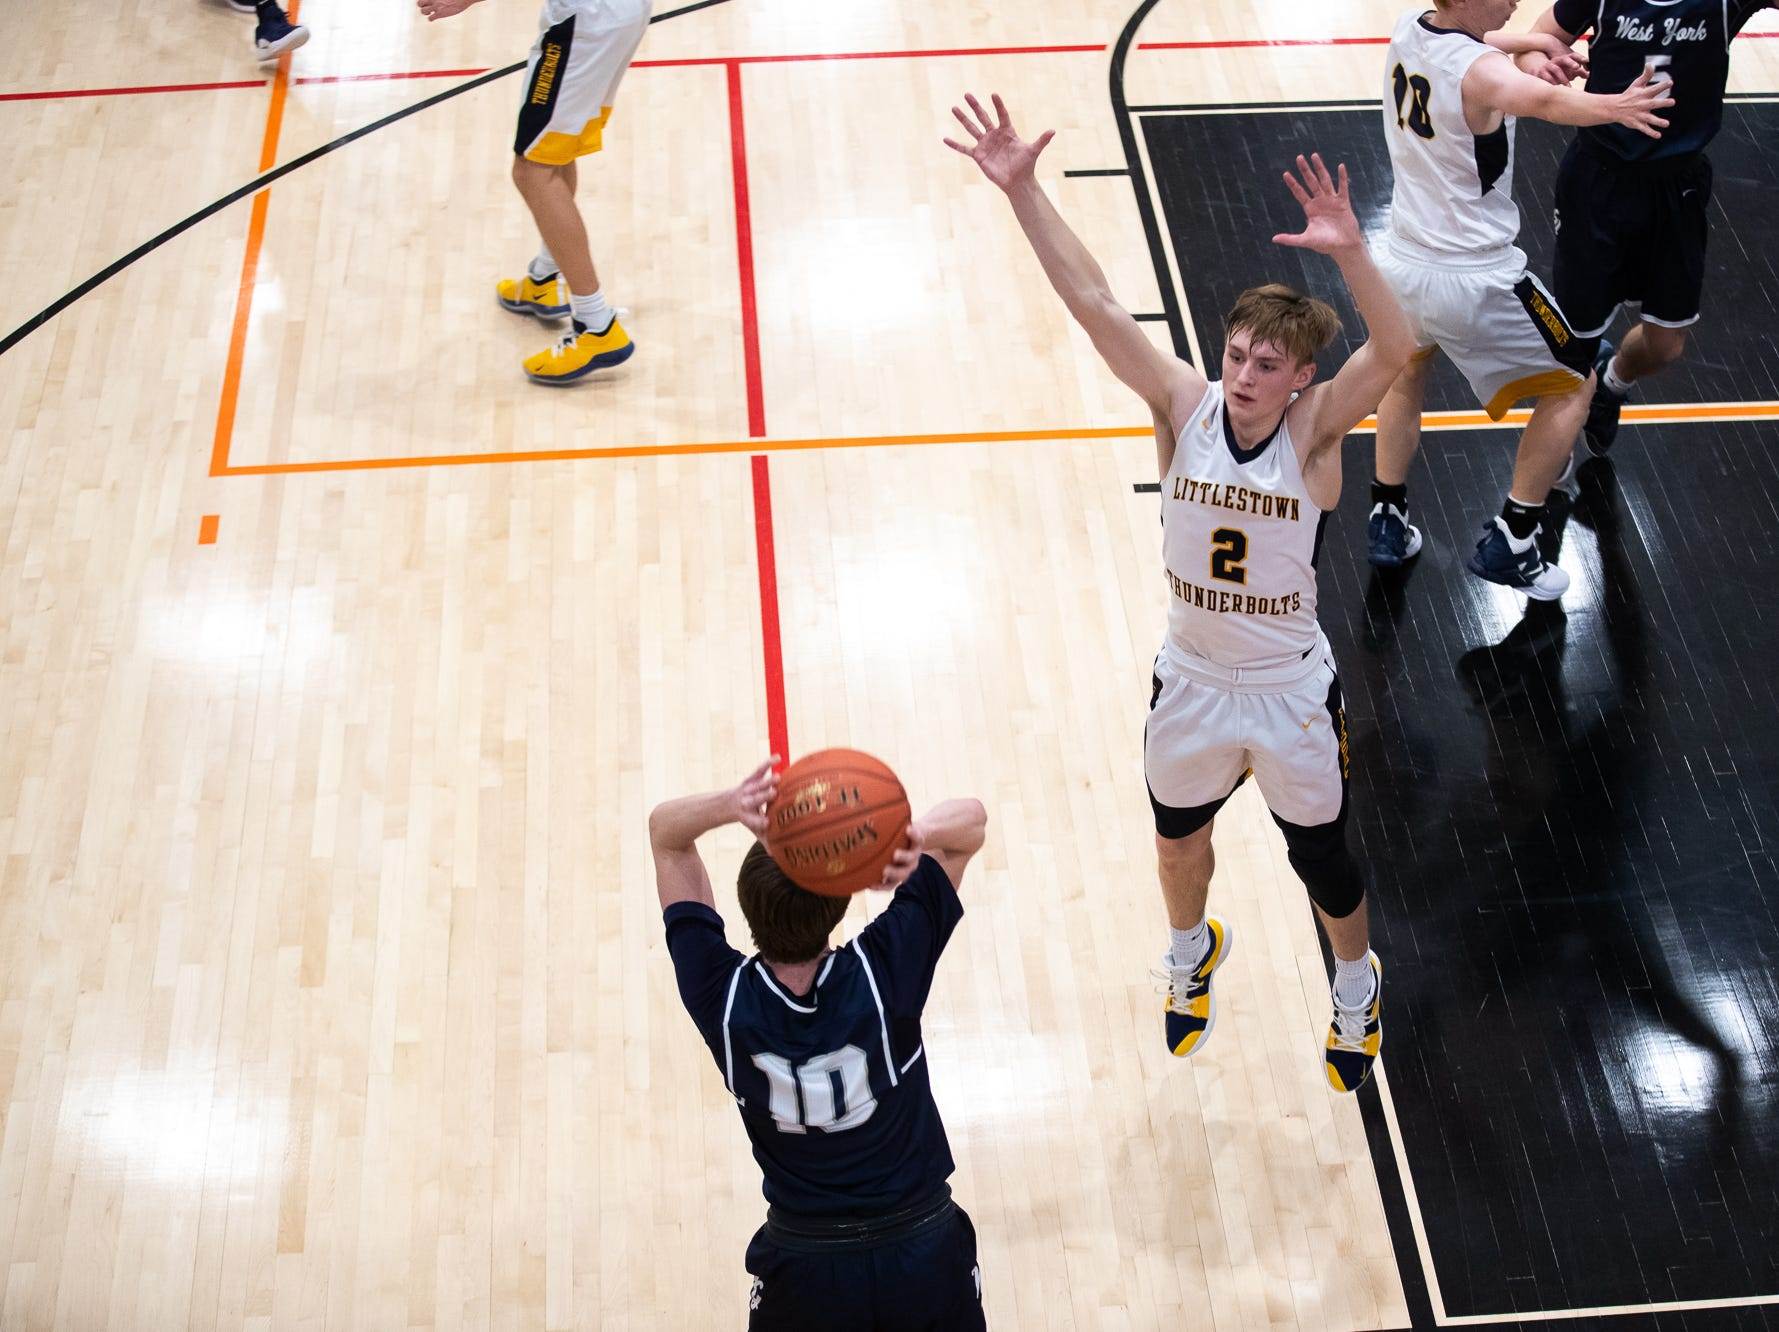 Littlestown's Jakob Lane (2) attempts to block a throw-in by West York's Corey Wise (10) during the first half of the YAIAA boys' basketball quarterfinals between Littlestown and West York, Saturday, Feb. 9, 2019, at Central York High School. West York led Littlestown 33-31 at the half.